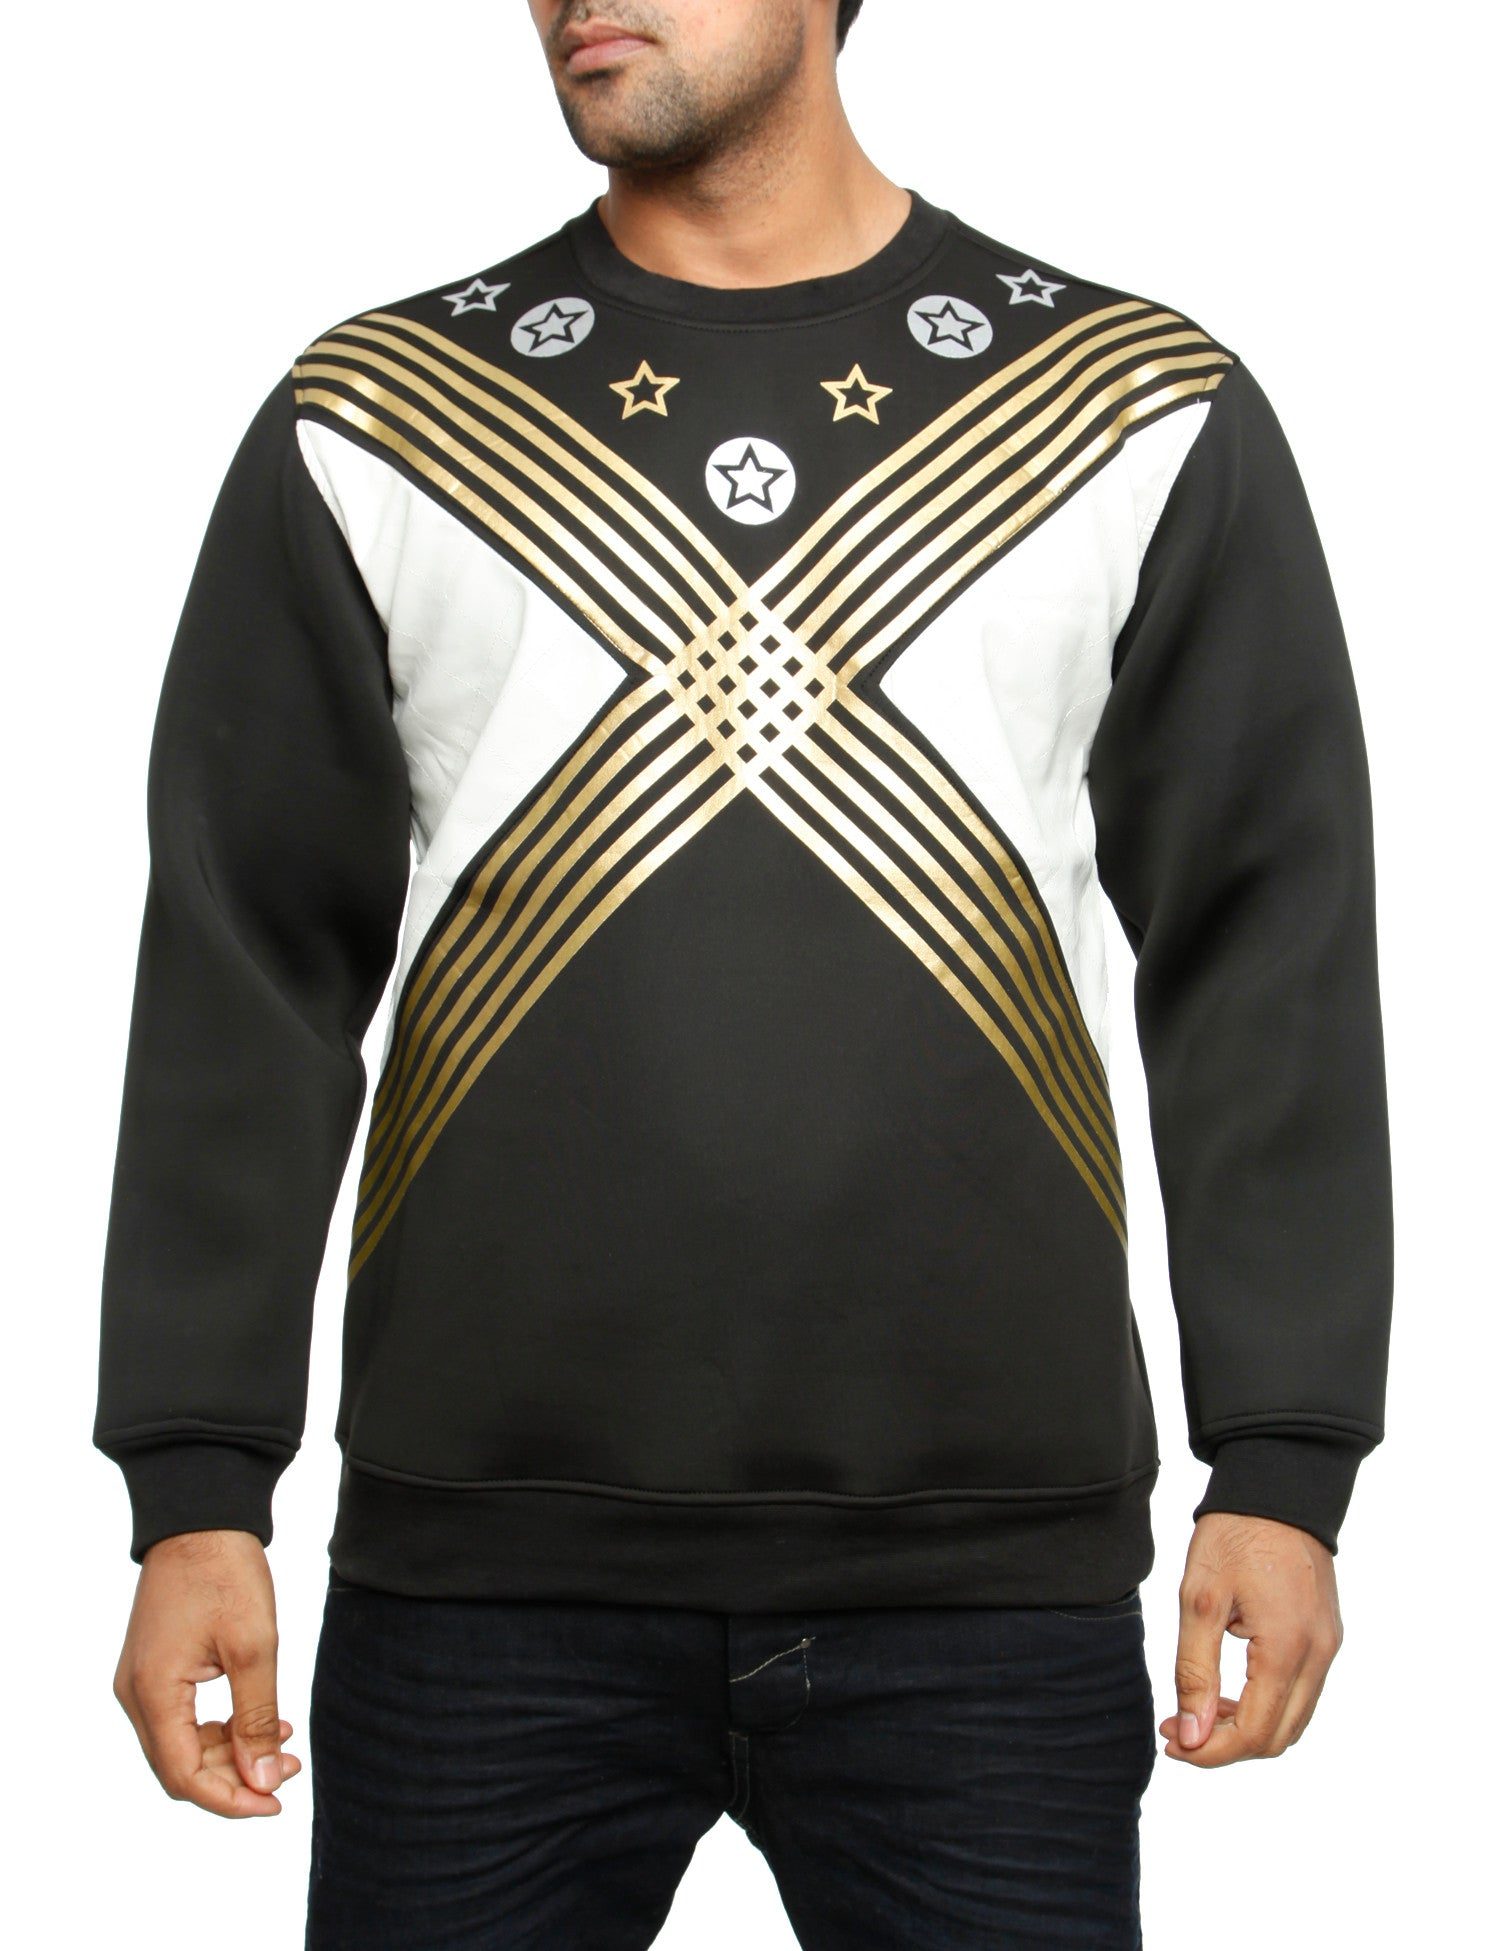 Imperious ?X? Neoprene Sweatshirt CS77 Black